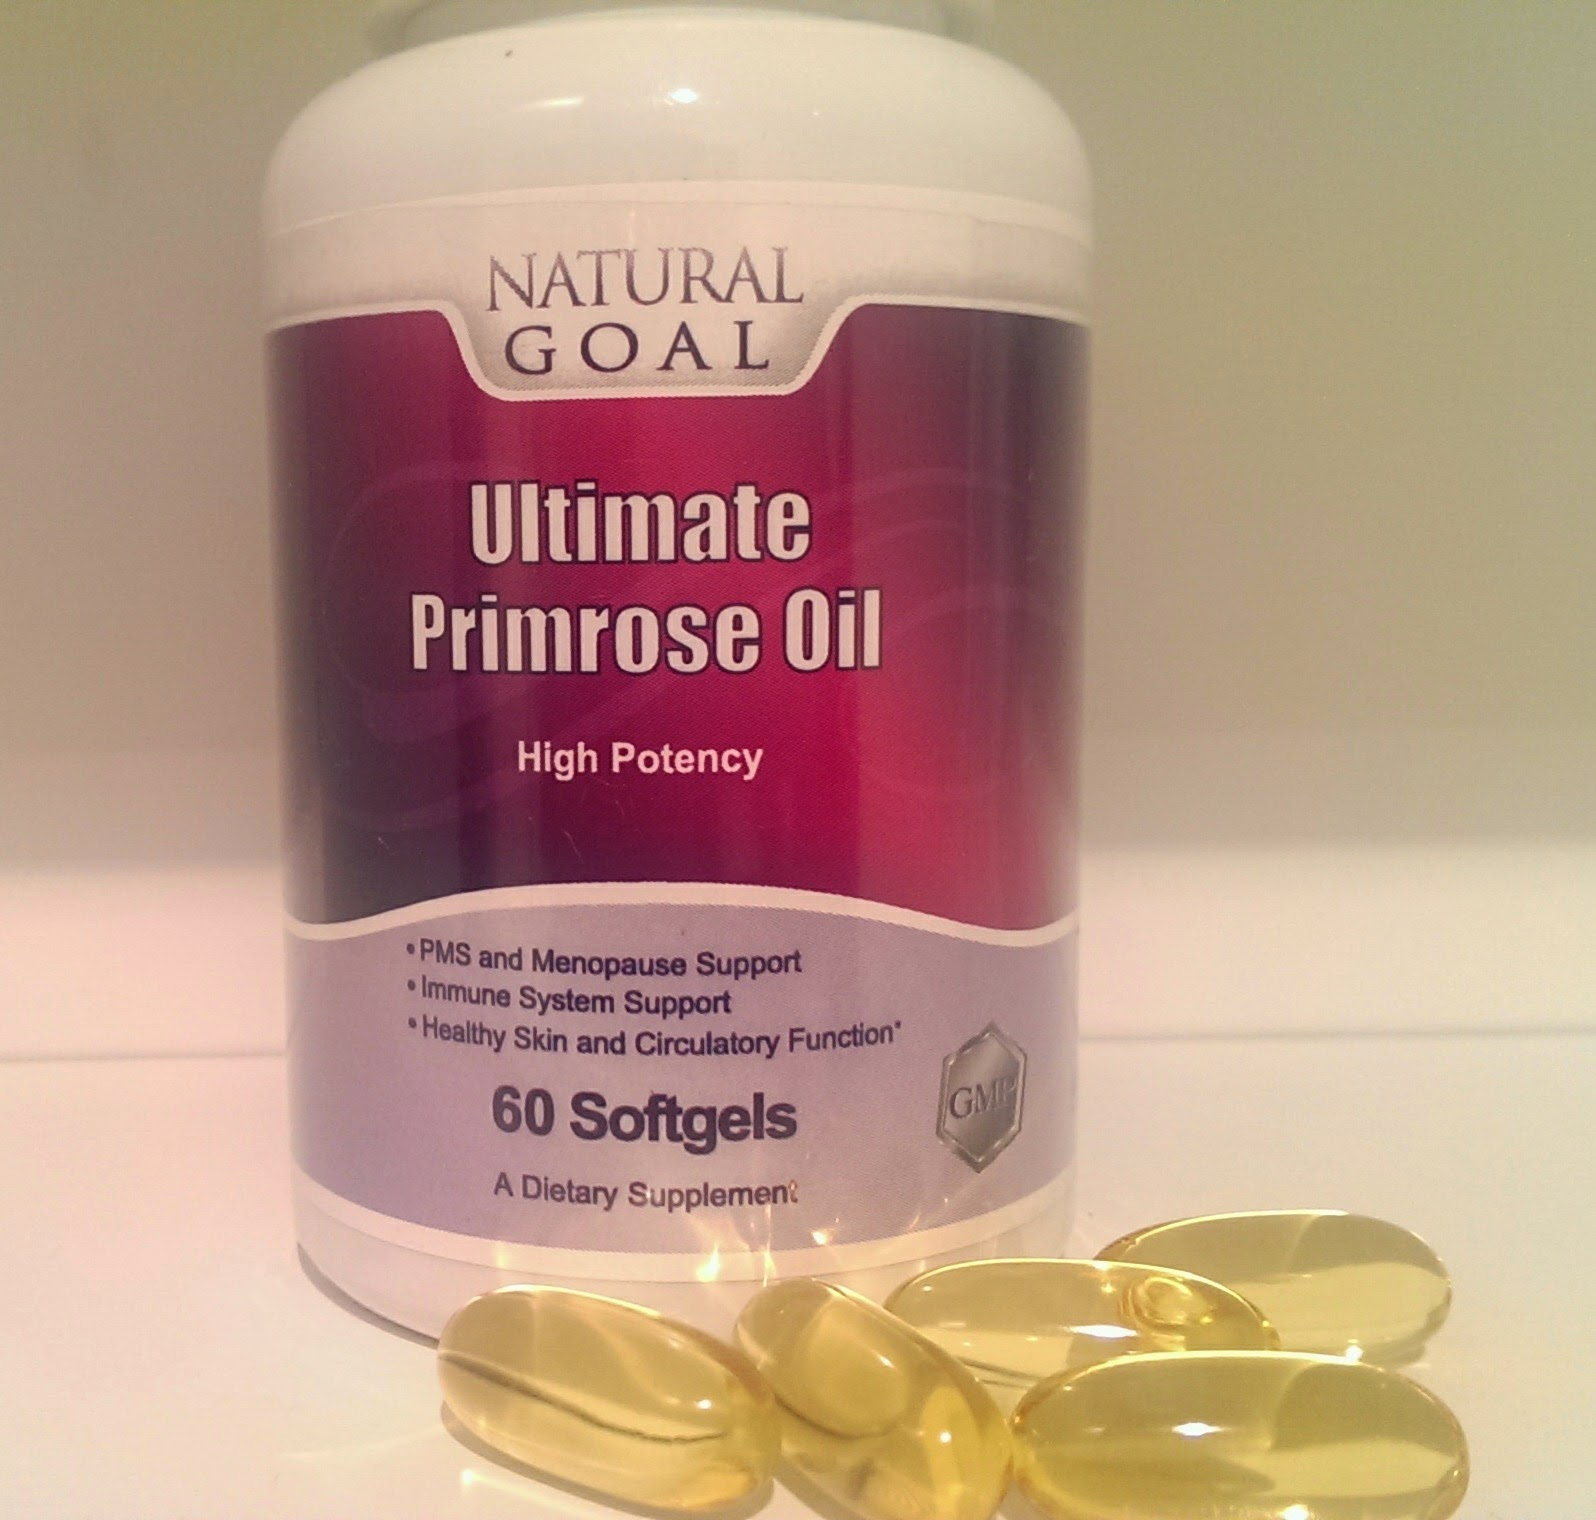 Evening+Primrose Ultimate Primrose Oil Review - Evening Primrose Oil PMS